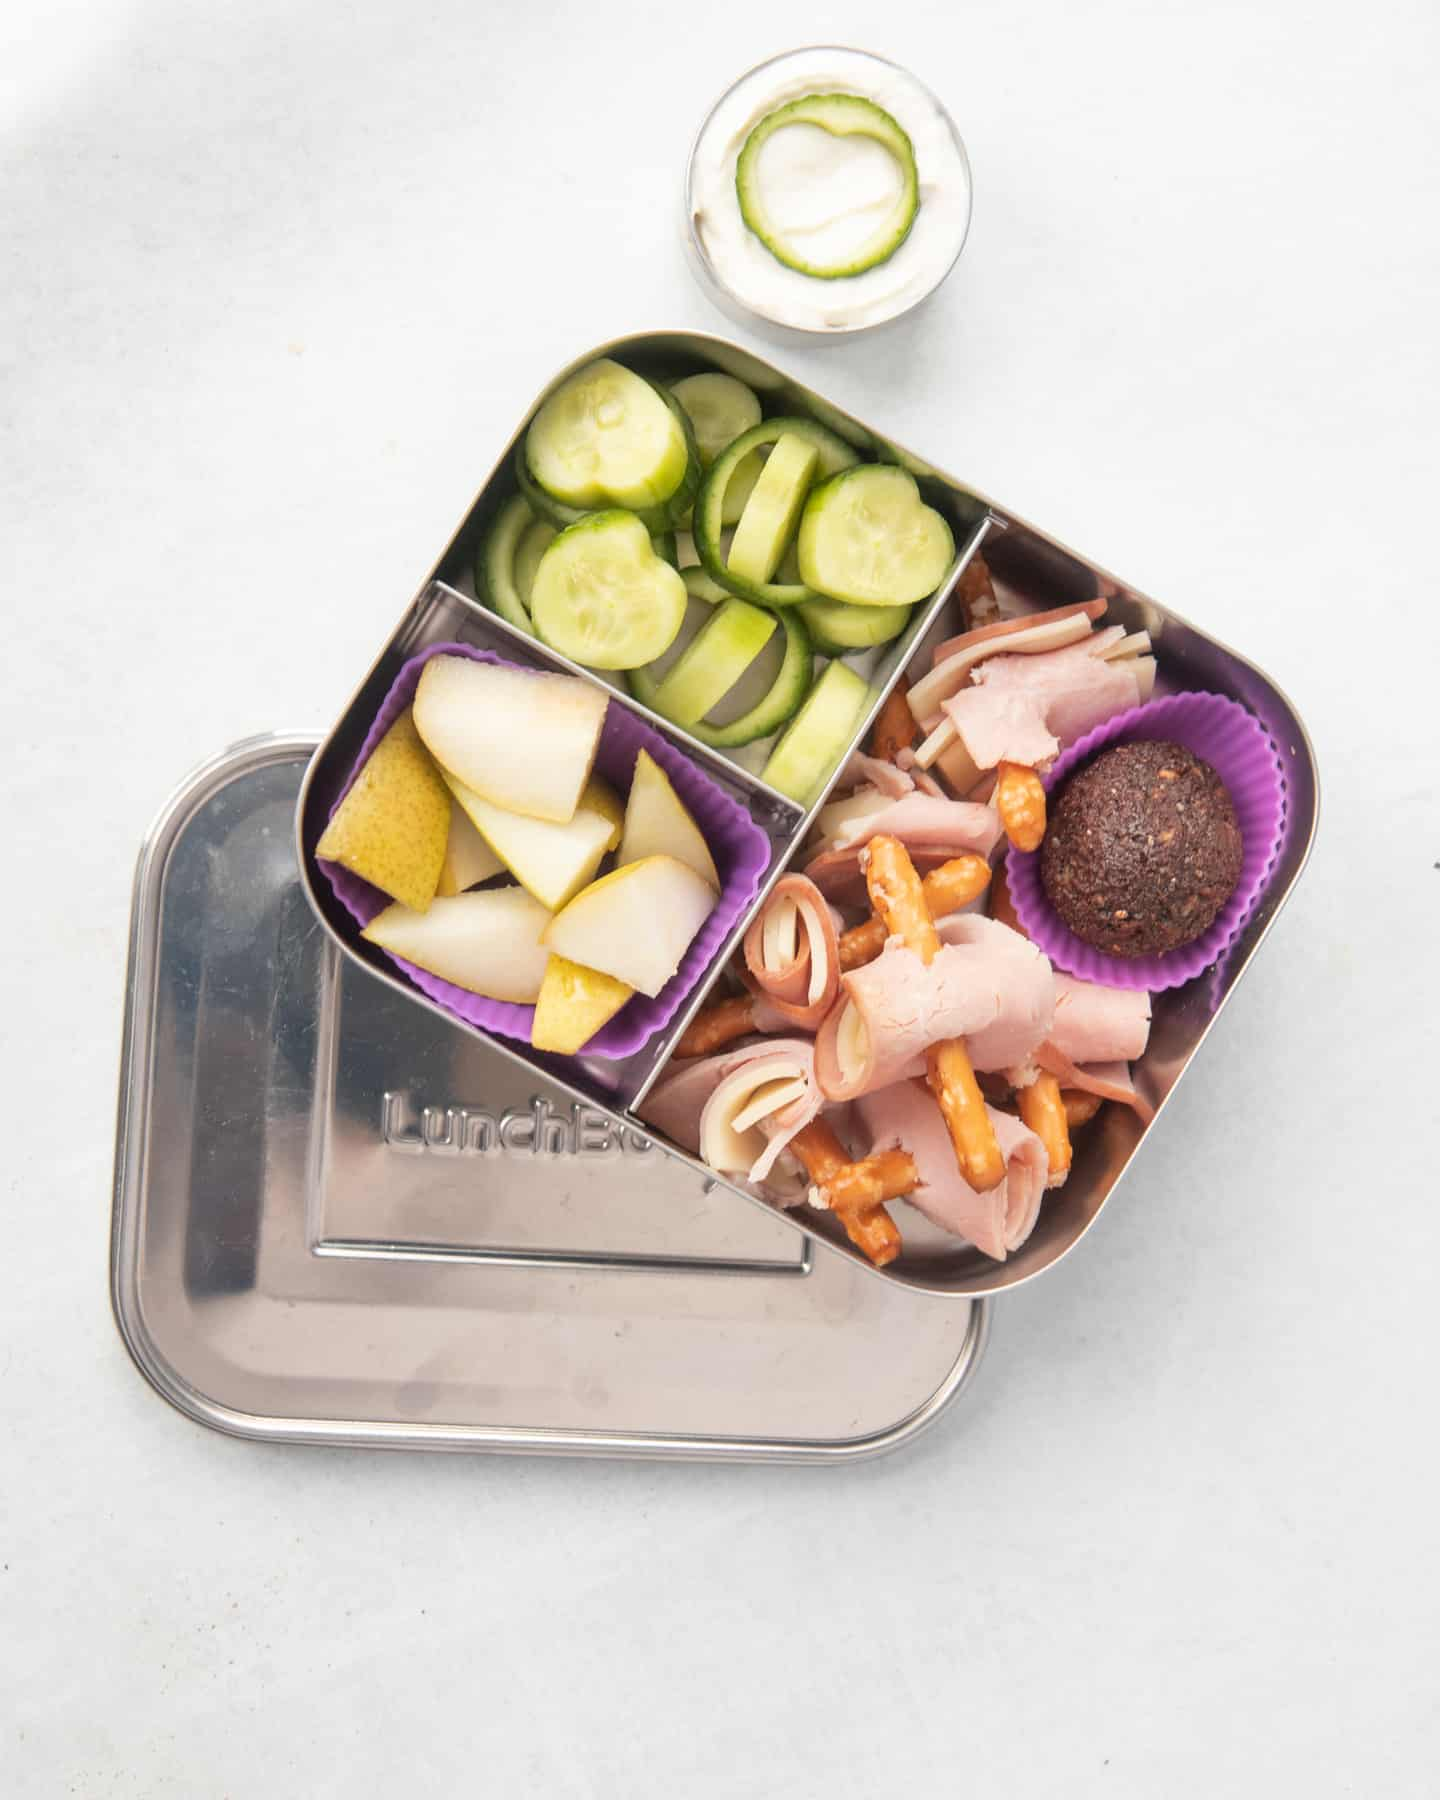 Another school lunch idea packed into a lunch box: ham and cheese roll-ups on pretzel stick skewers, fruit, and cucumbers.